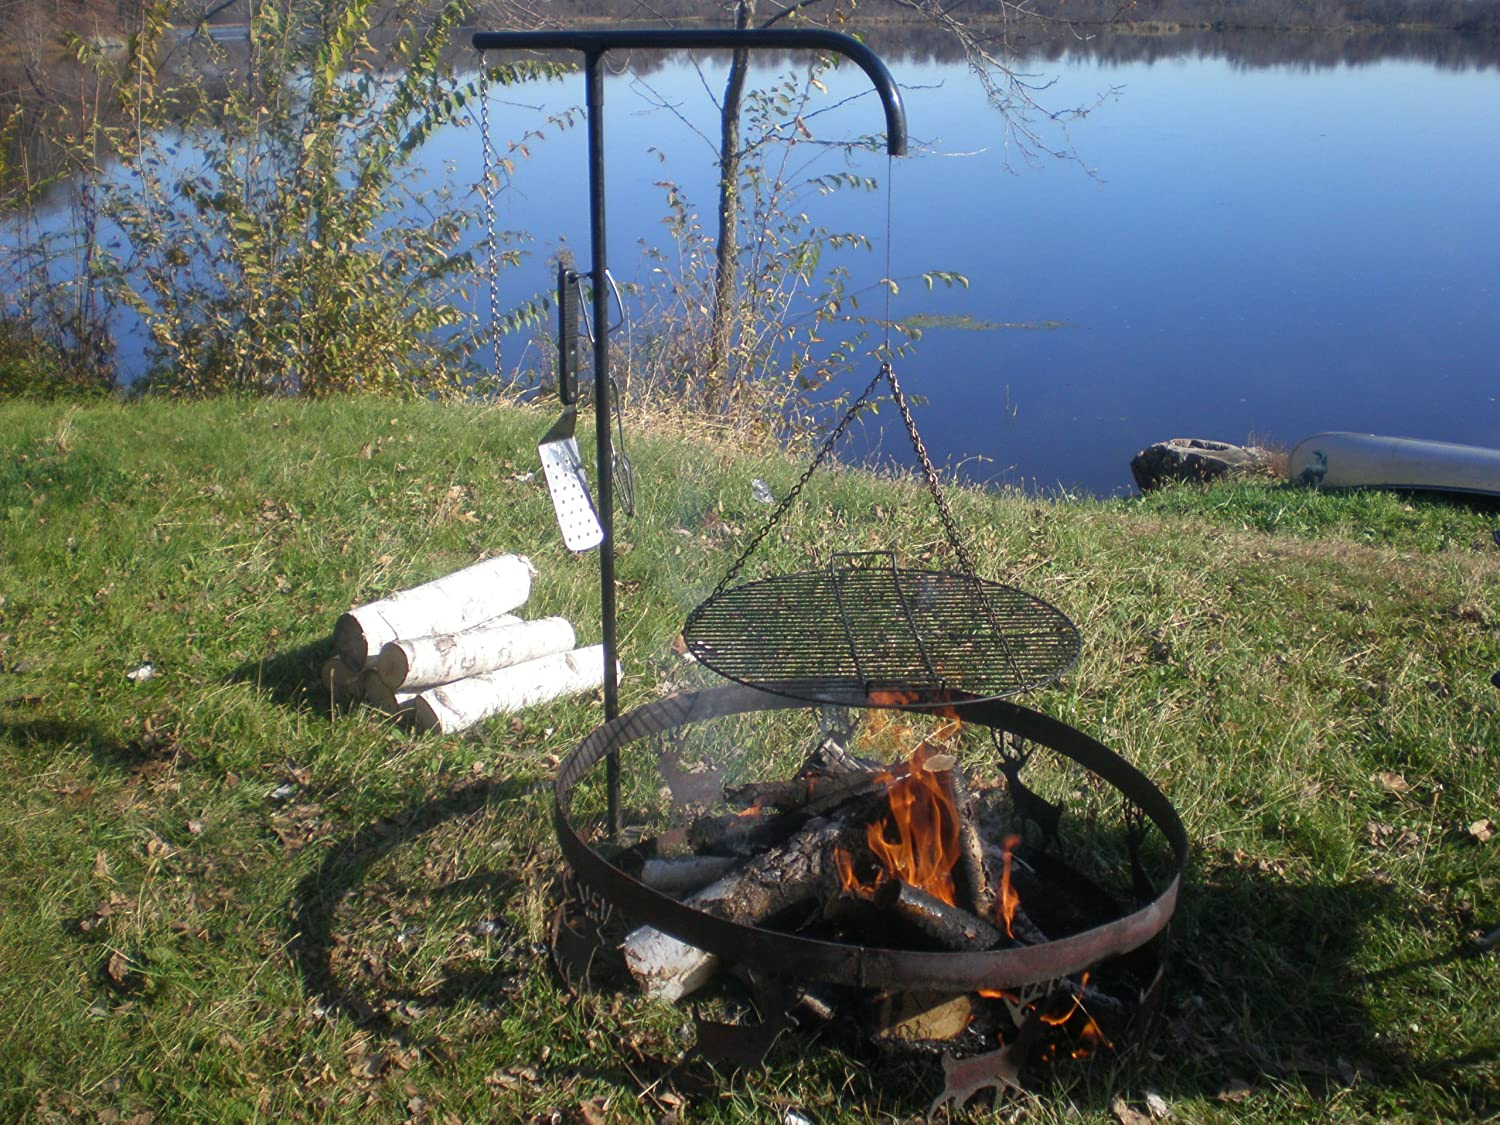 Wimpy s Swing-away Campfire Grill